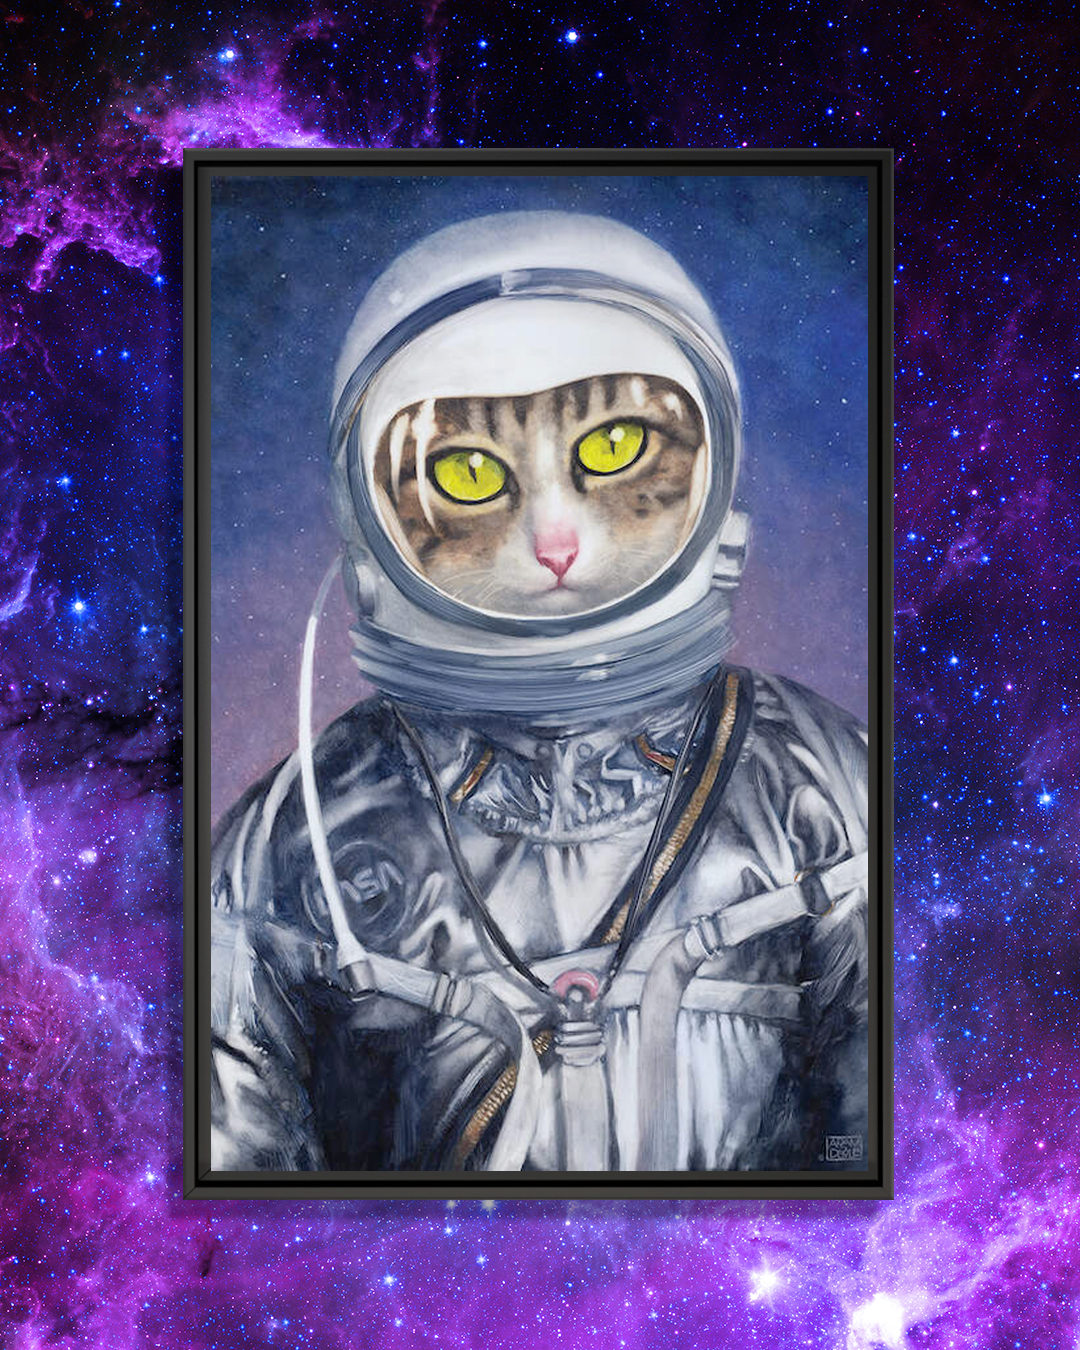 a cat with green eyes wearing an astronaut suit in space